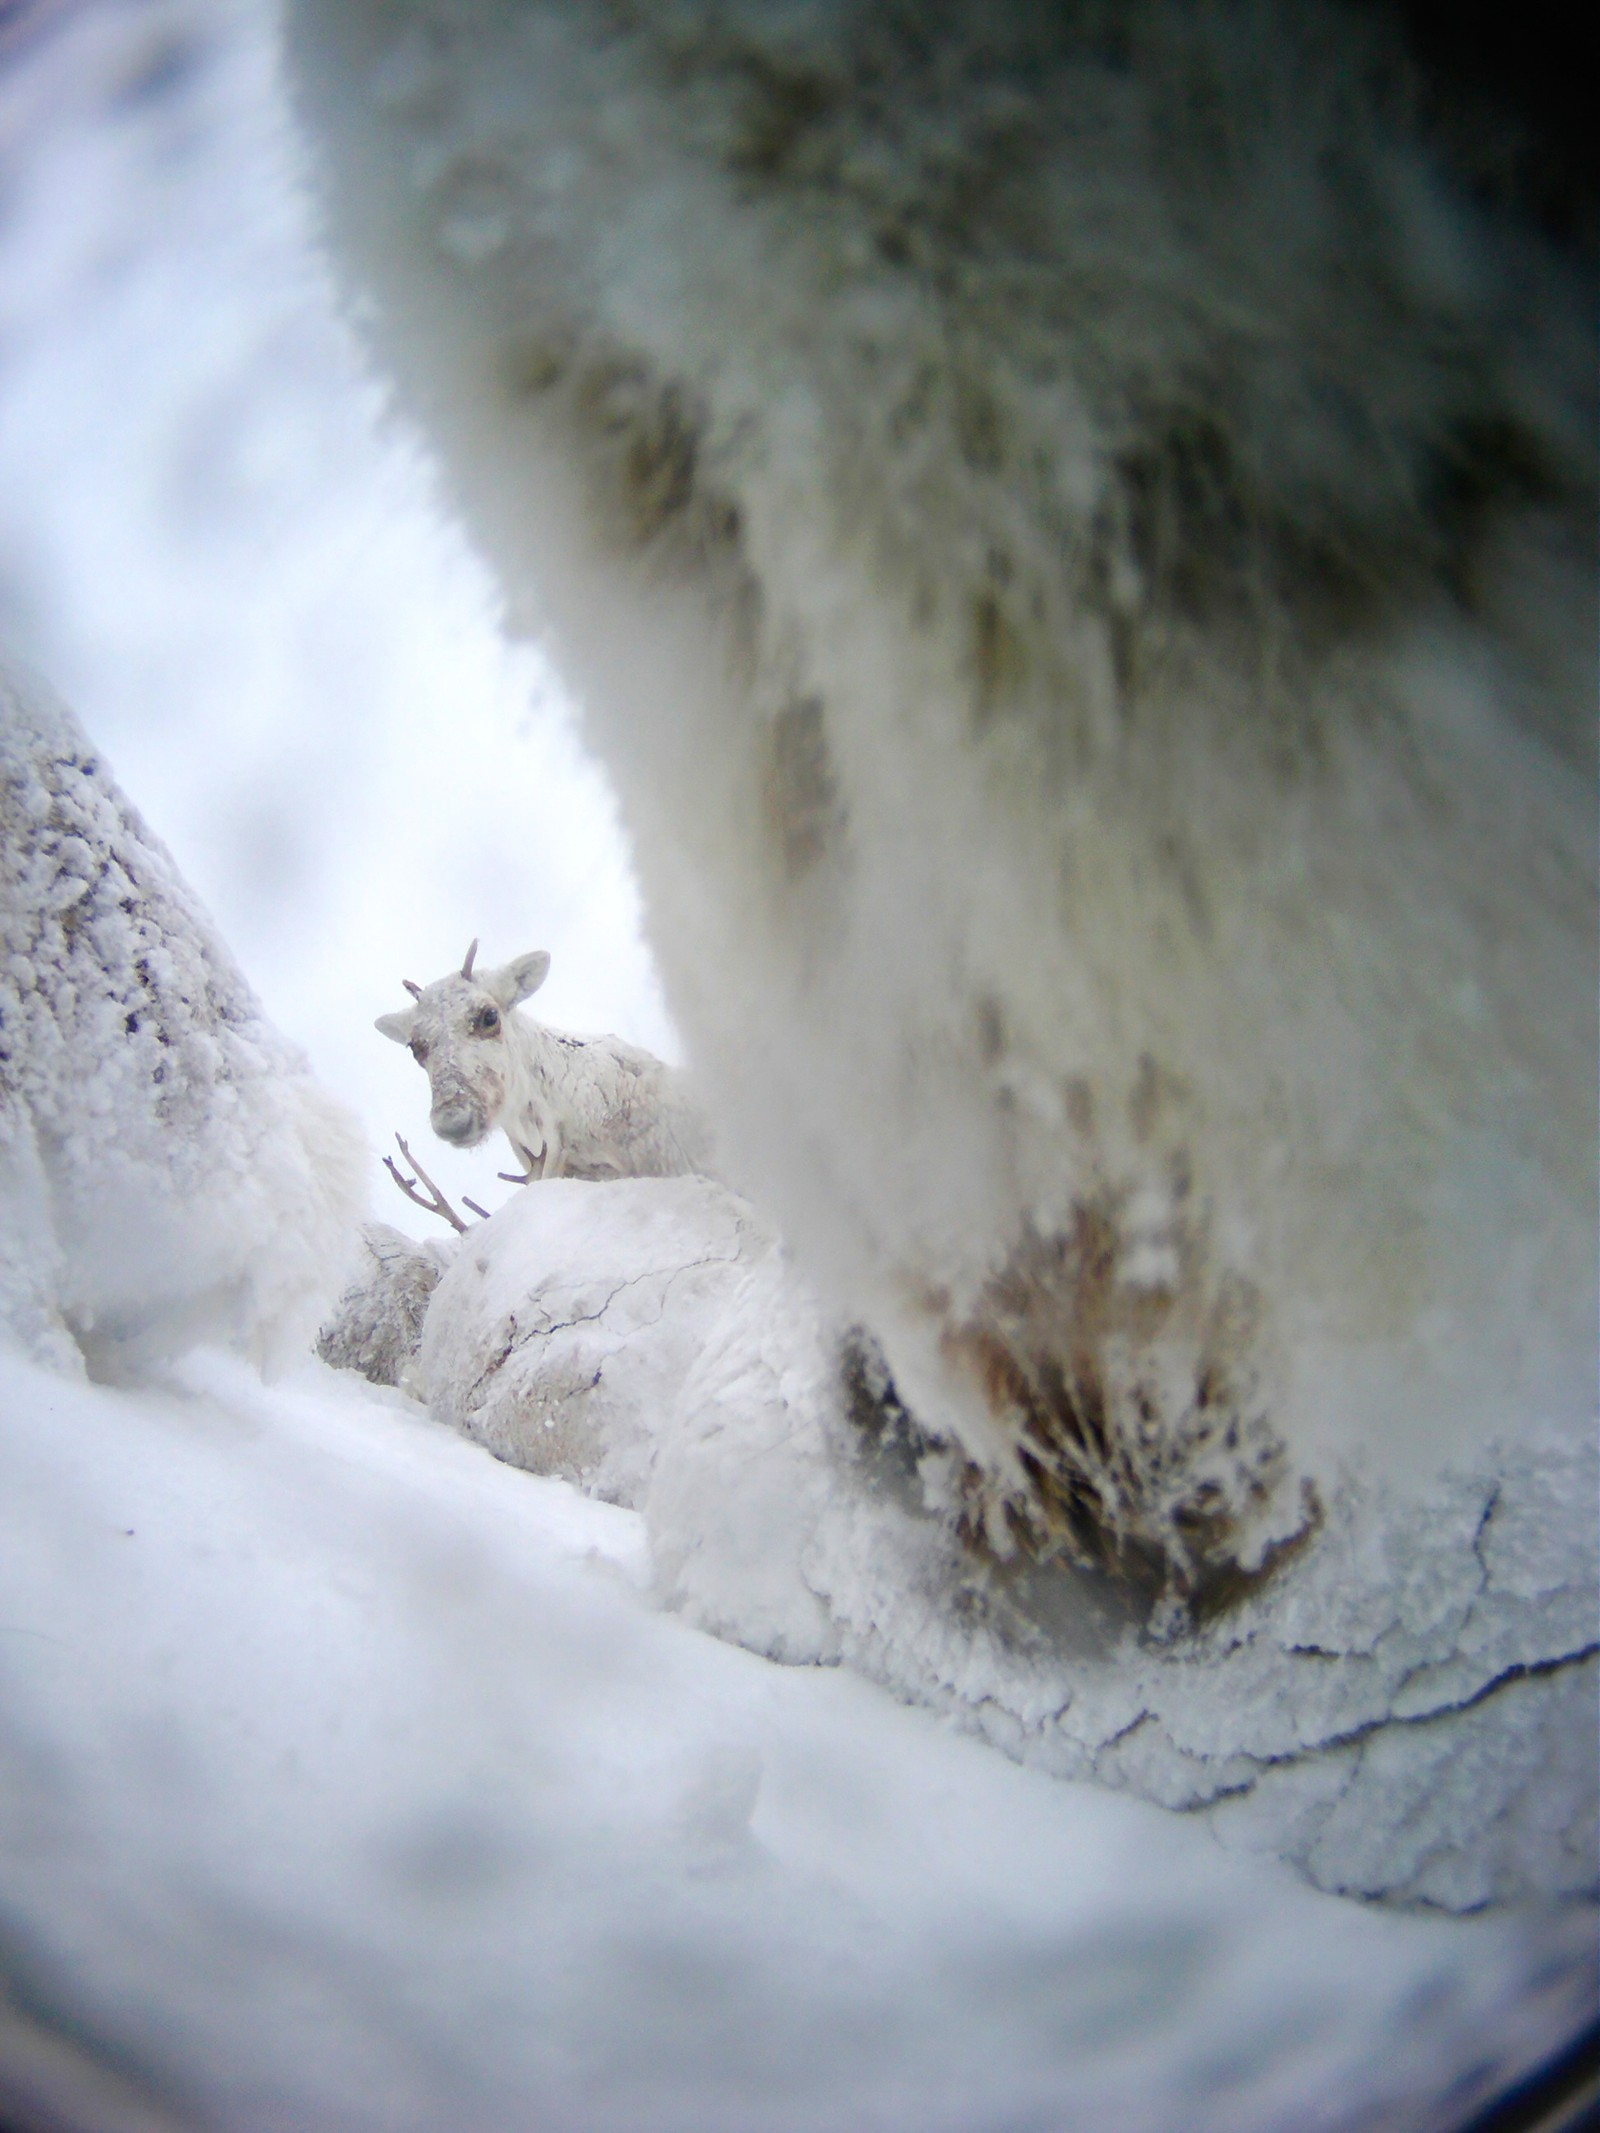 A snow clad reindeer is looking directly at the photographing reindeer.